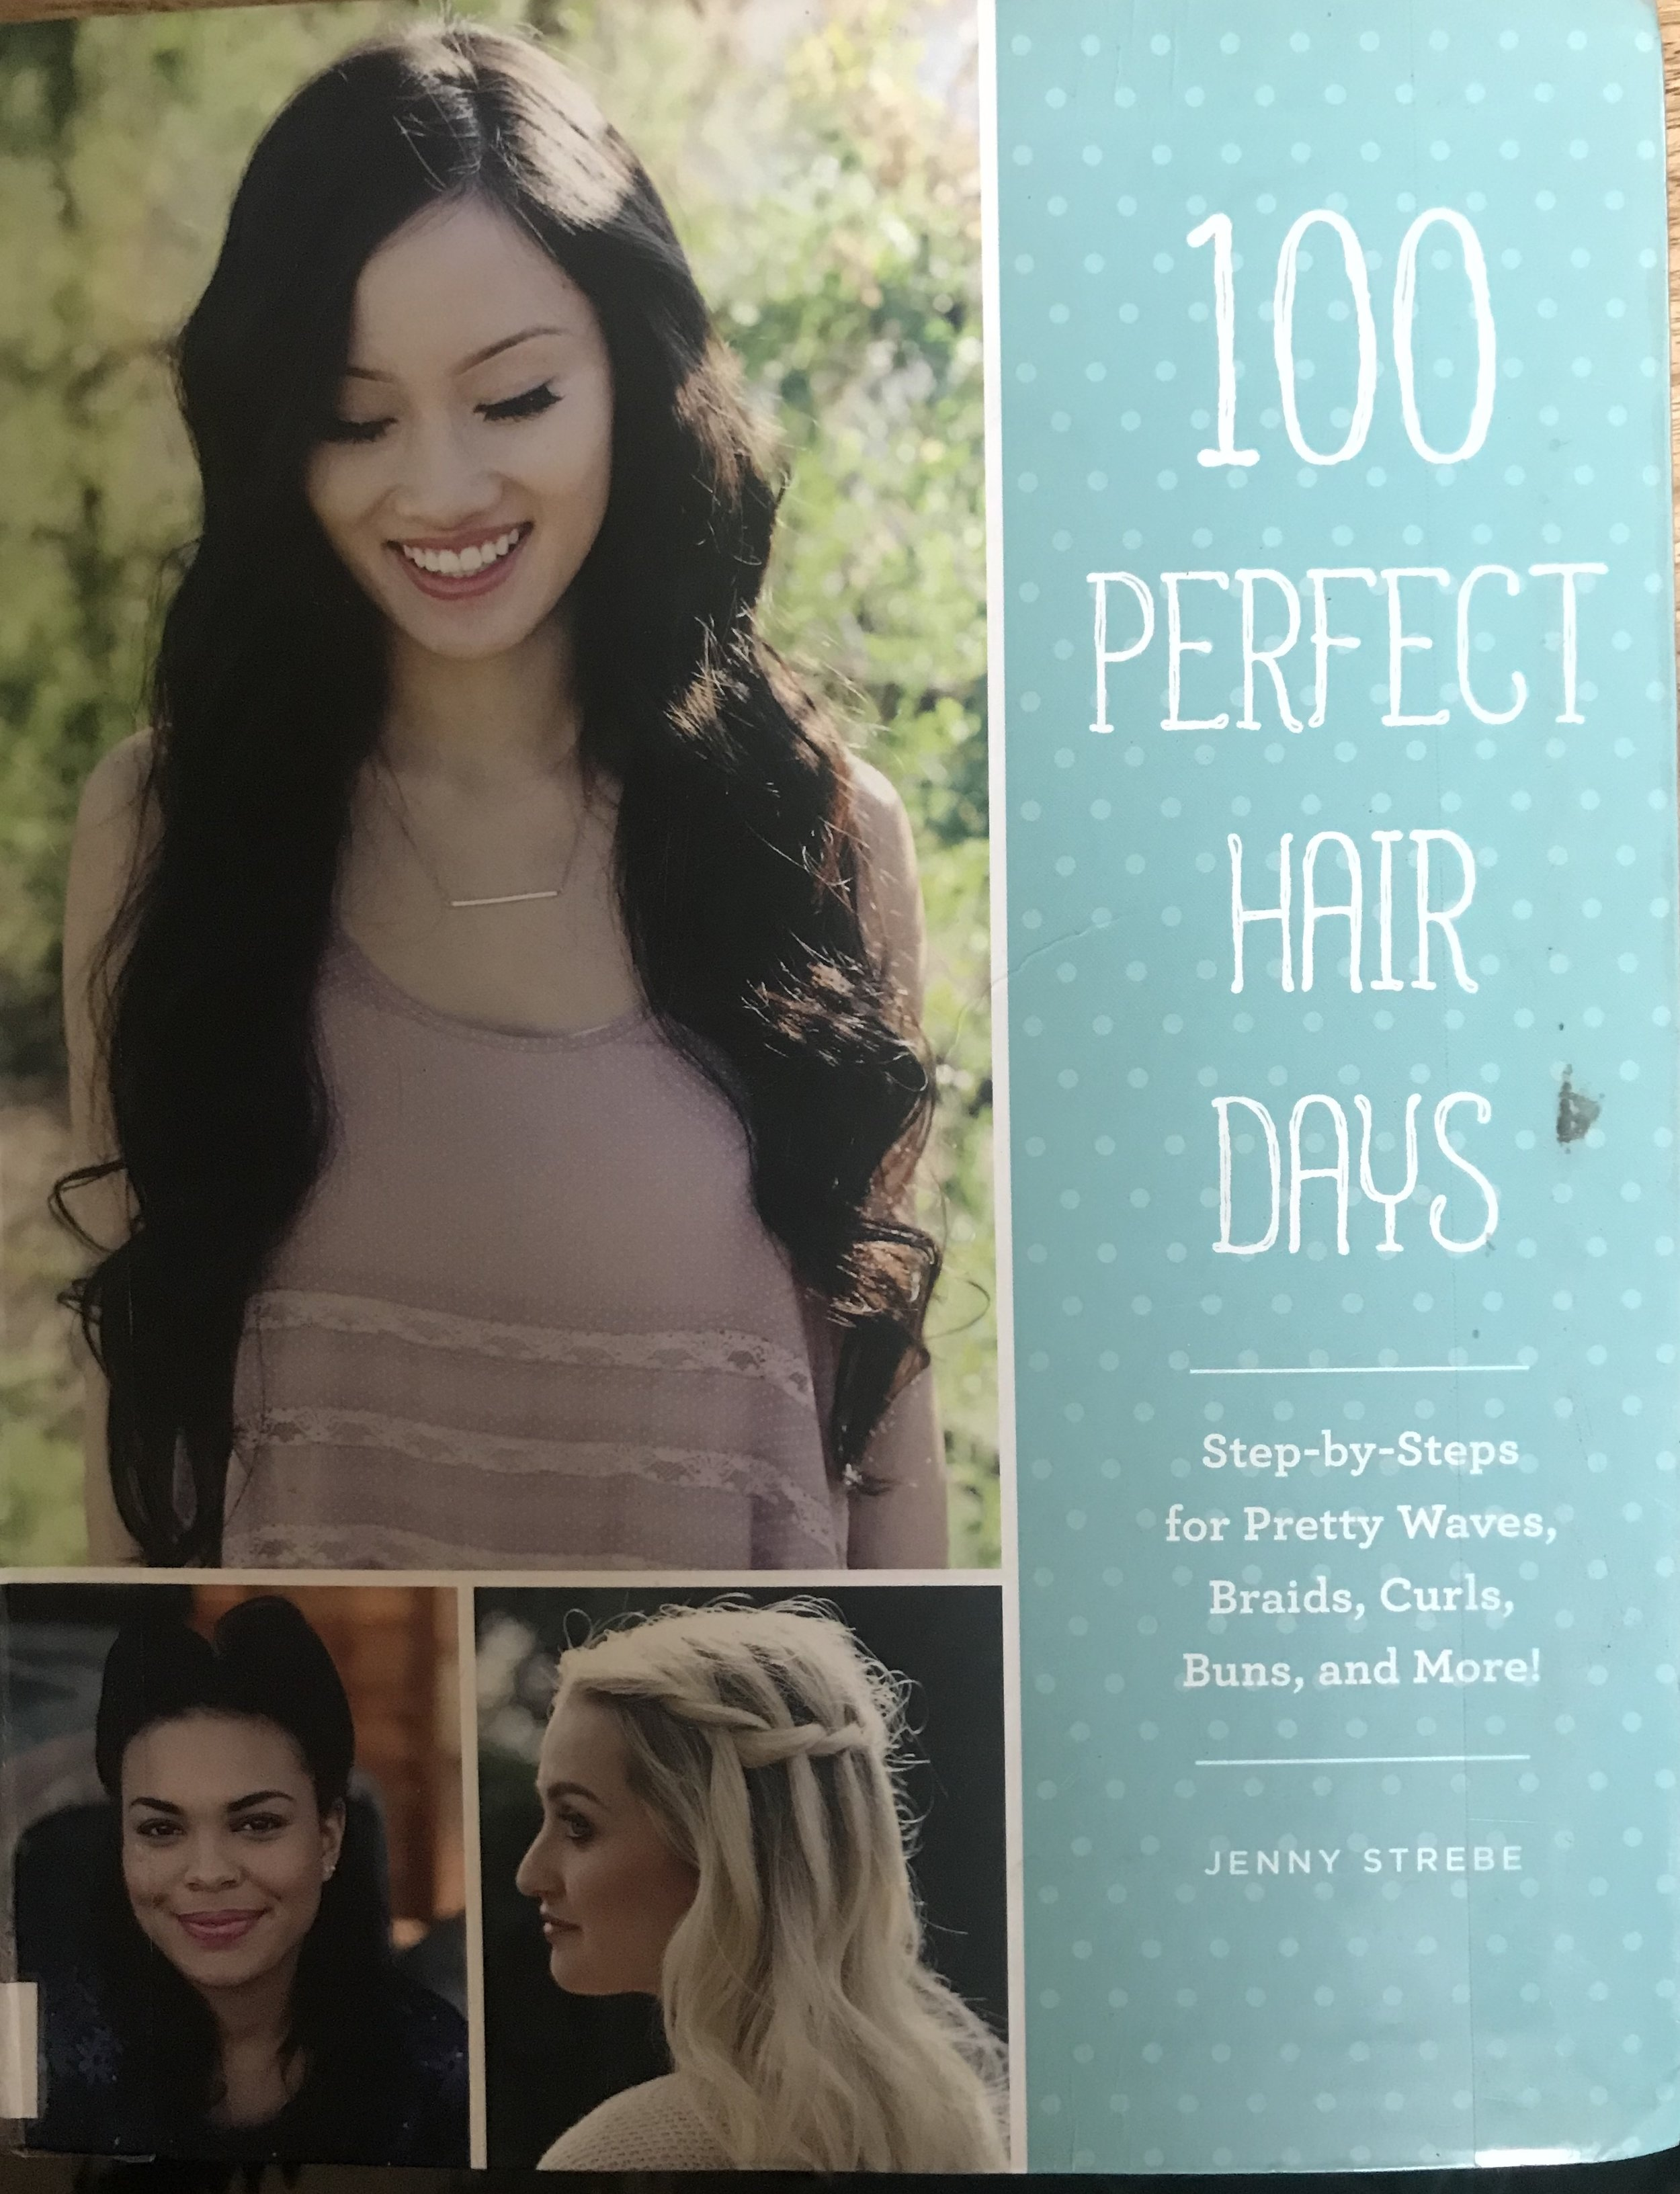 The author of this book did an incredible job in considering the hair texture, length and density for each style and nobody is left out. There are some really fantastic looking styes in here that somehow are simply explained.